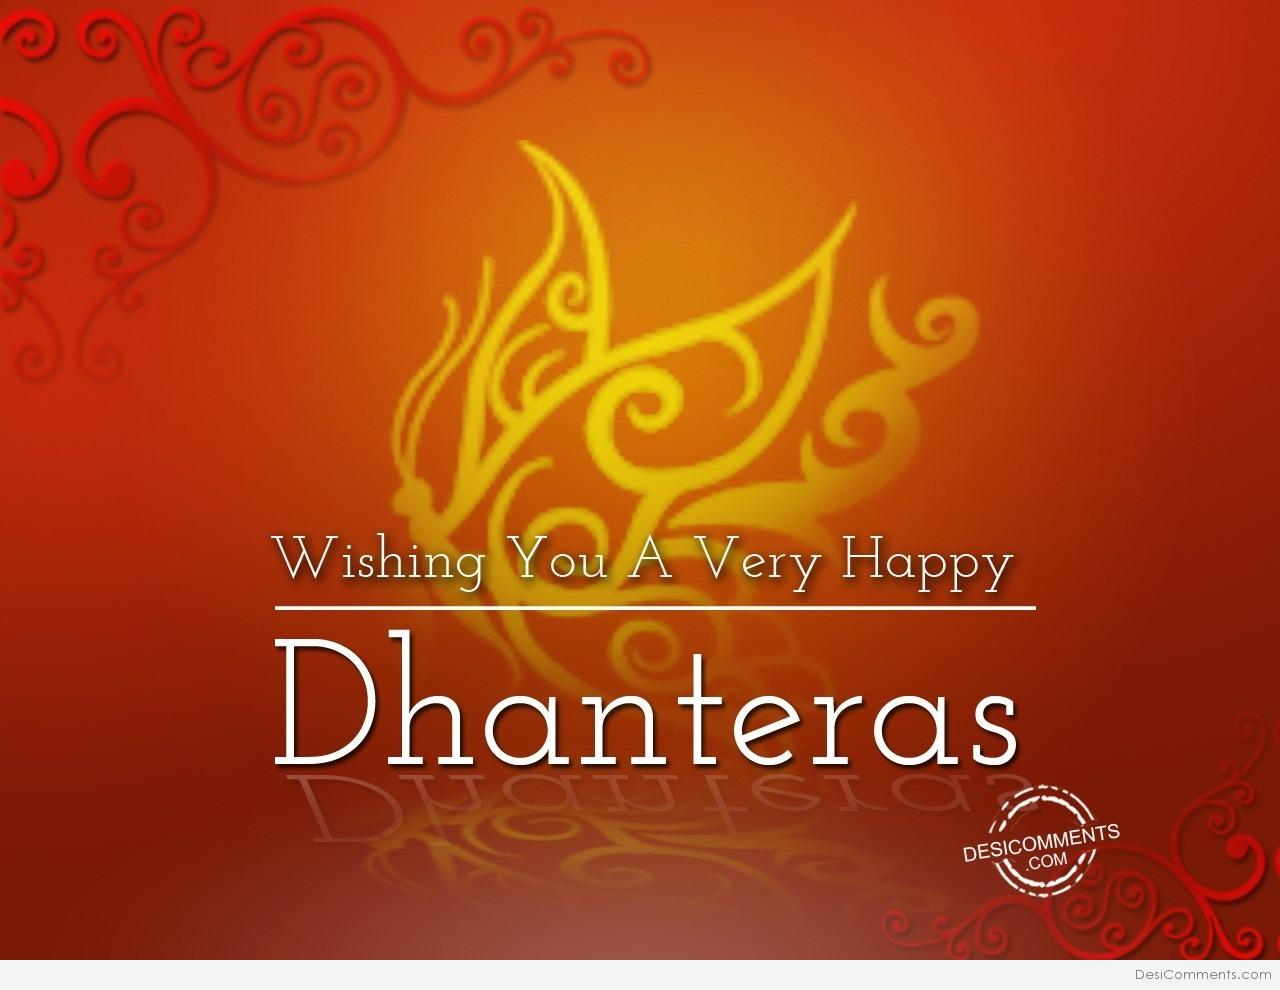 Happy Dhanteras 2017 Image for Whatsapp